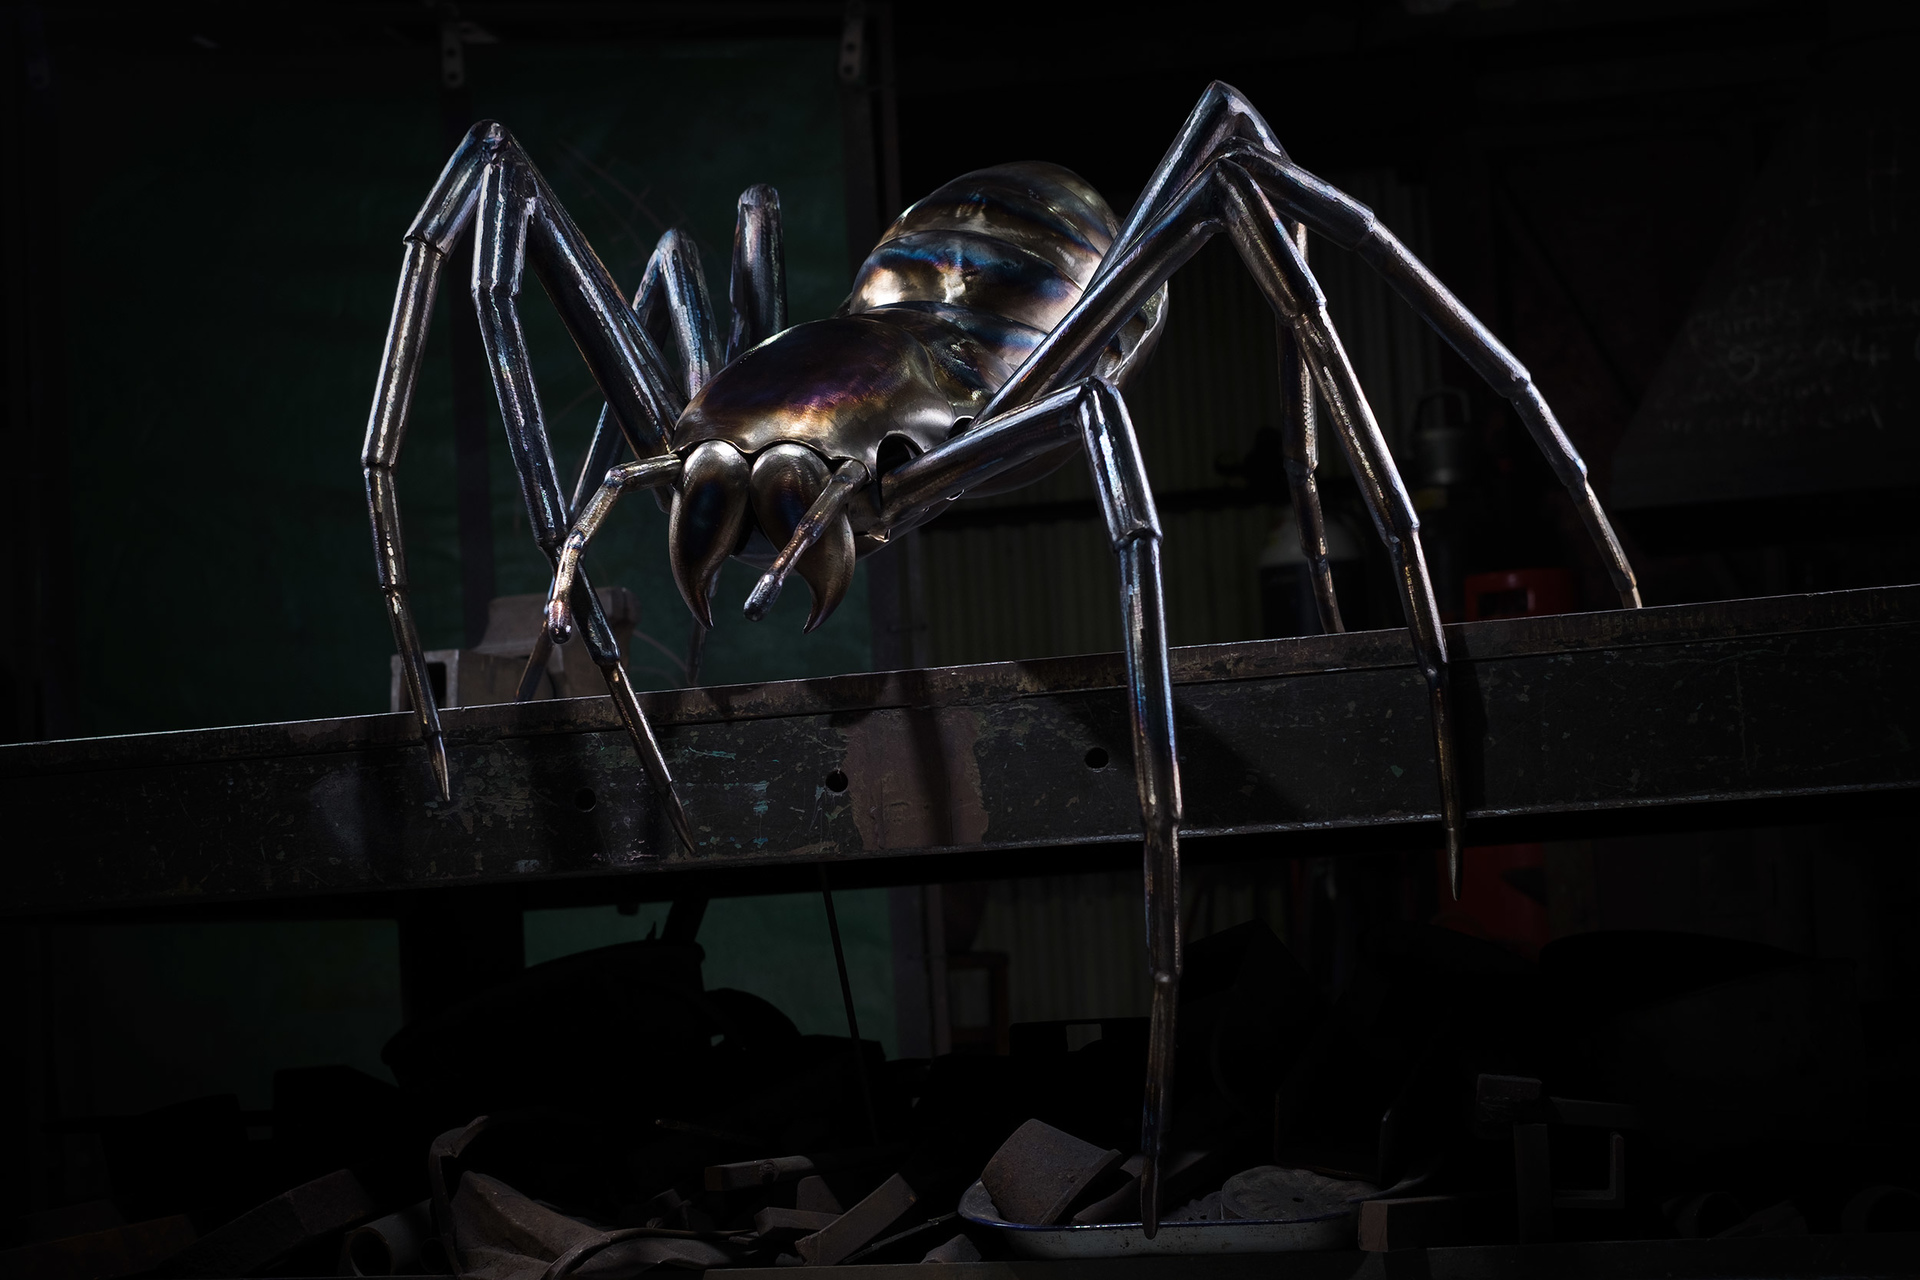 Metal Arachnid sculpture by Gary & Thomas Thrussel.